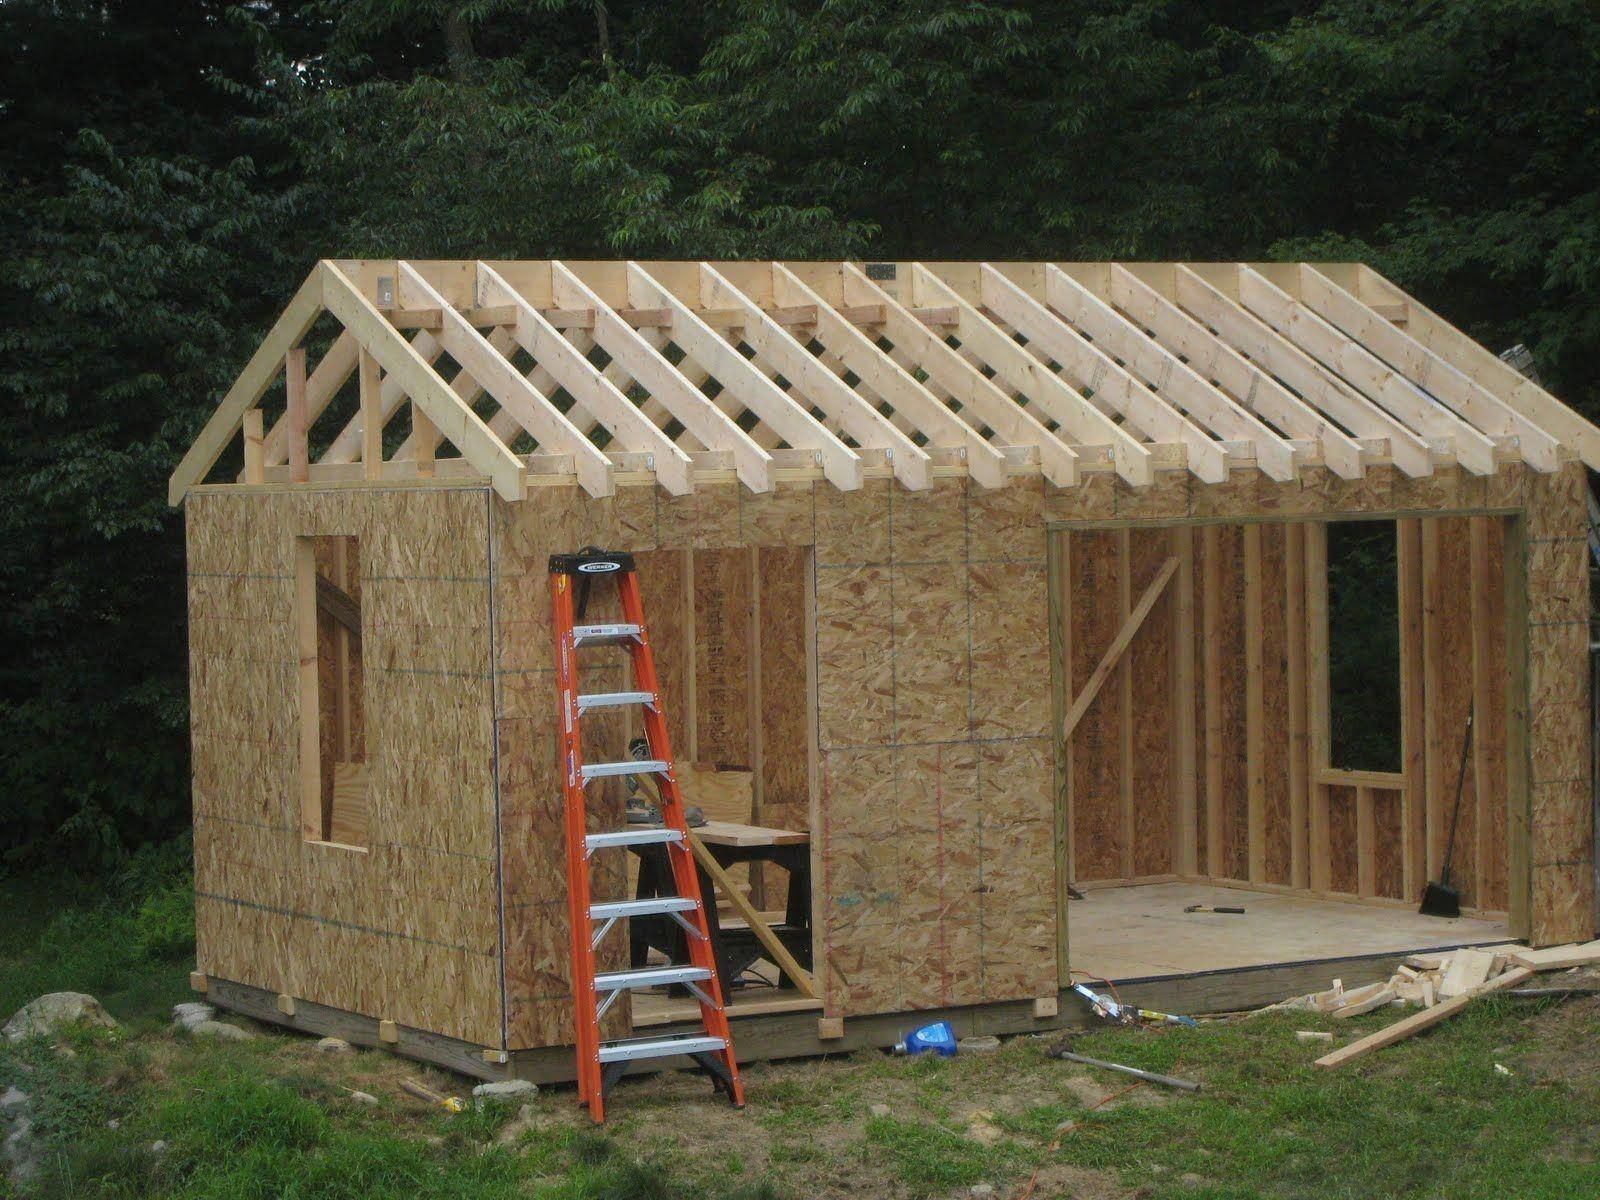 Shed Diy Easy Storage Ideas Just Craft Projects Diystorageshedplans Now You Can Build Any In A Weekend Even If Ve Zero